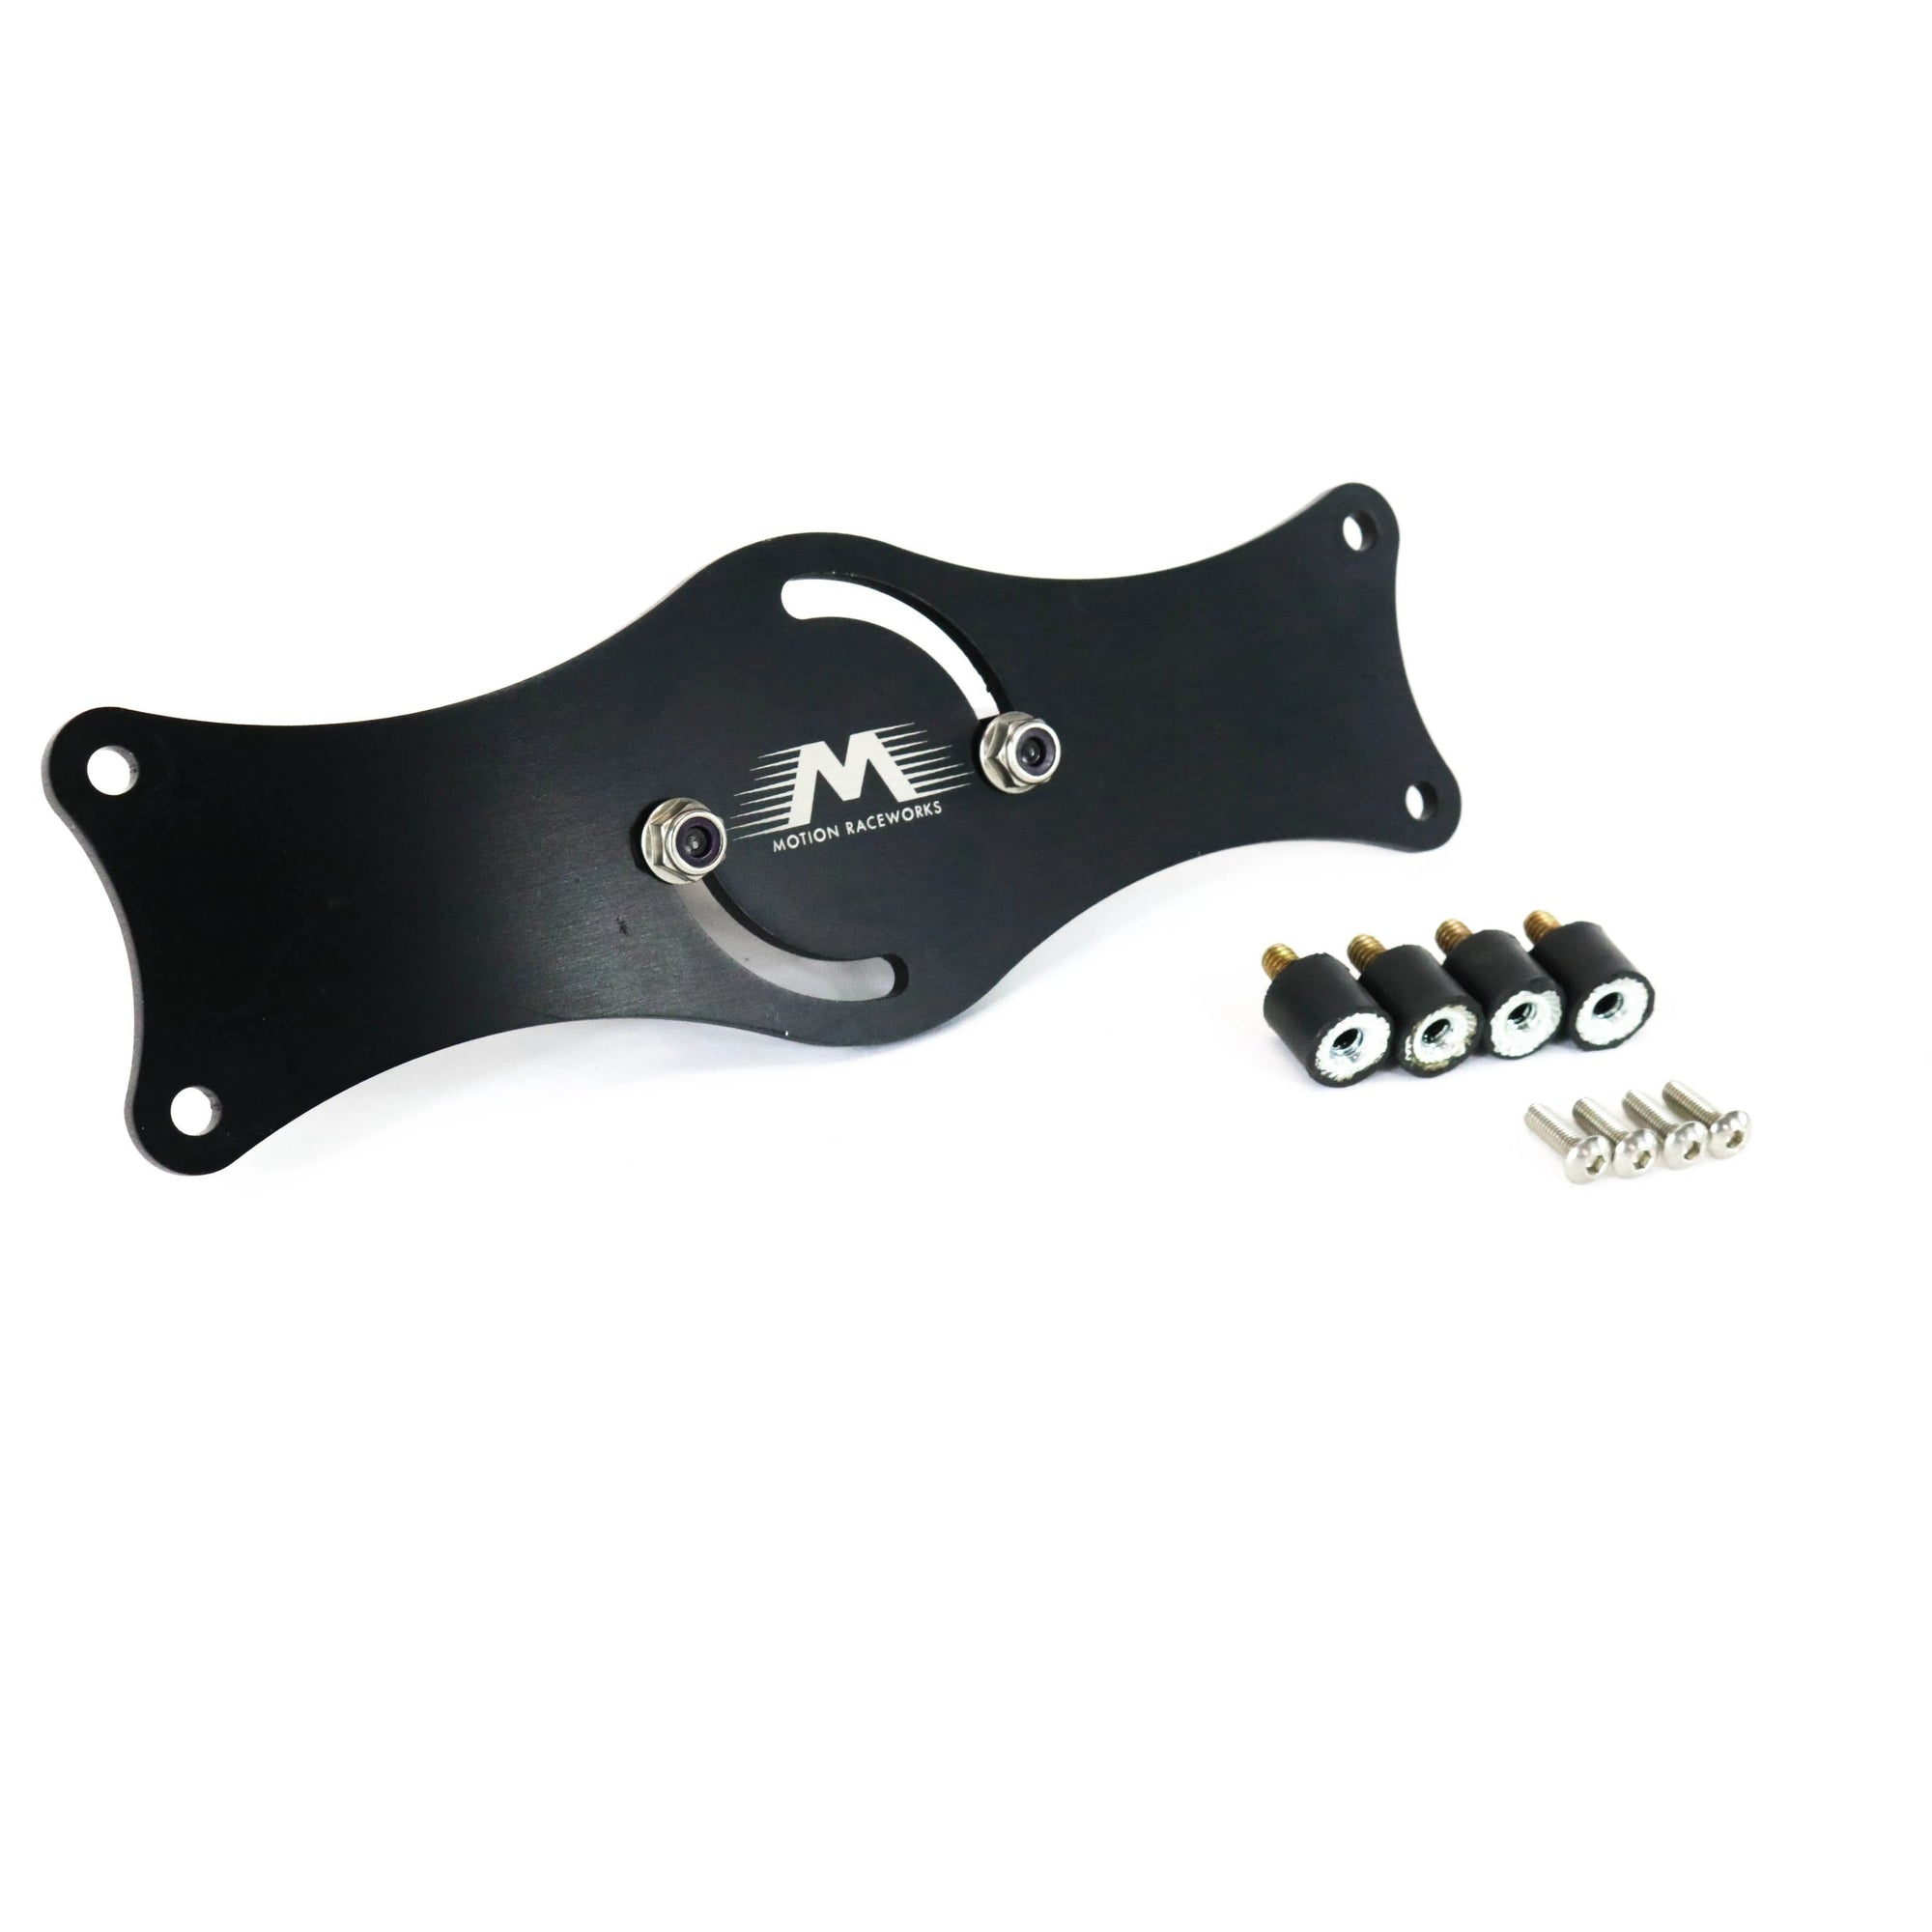 Holley EFI Terminator X Max ECU Roll Bar Mount - Motion Raceworks